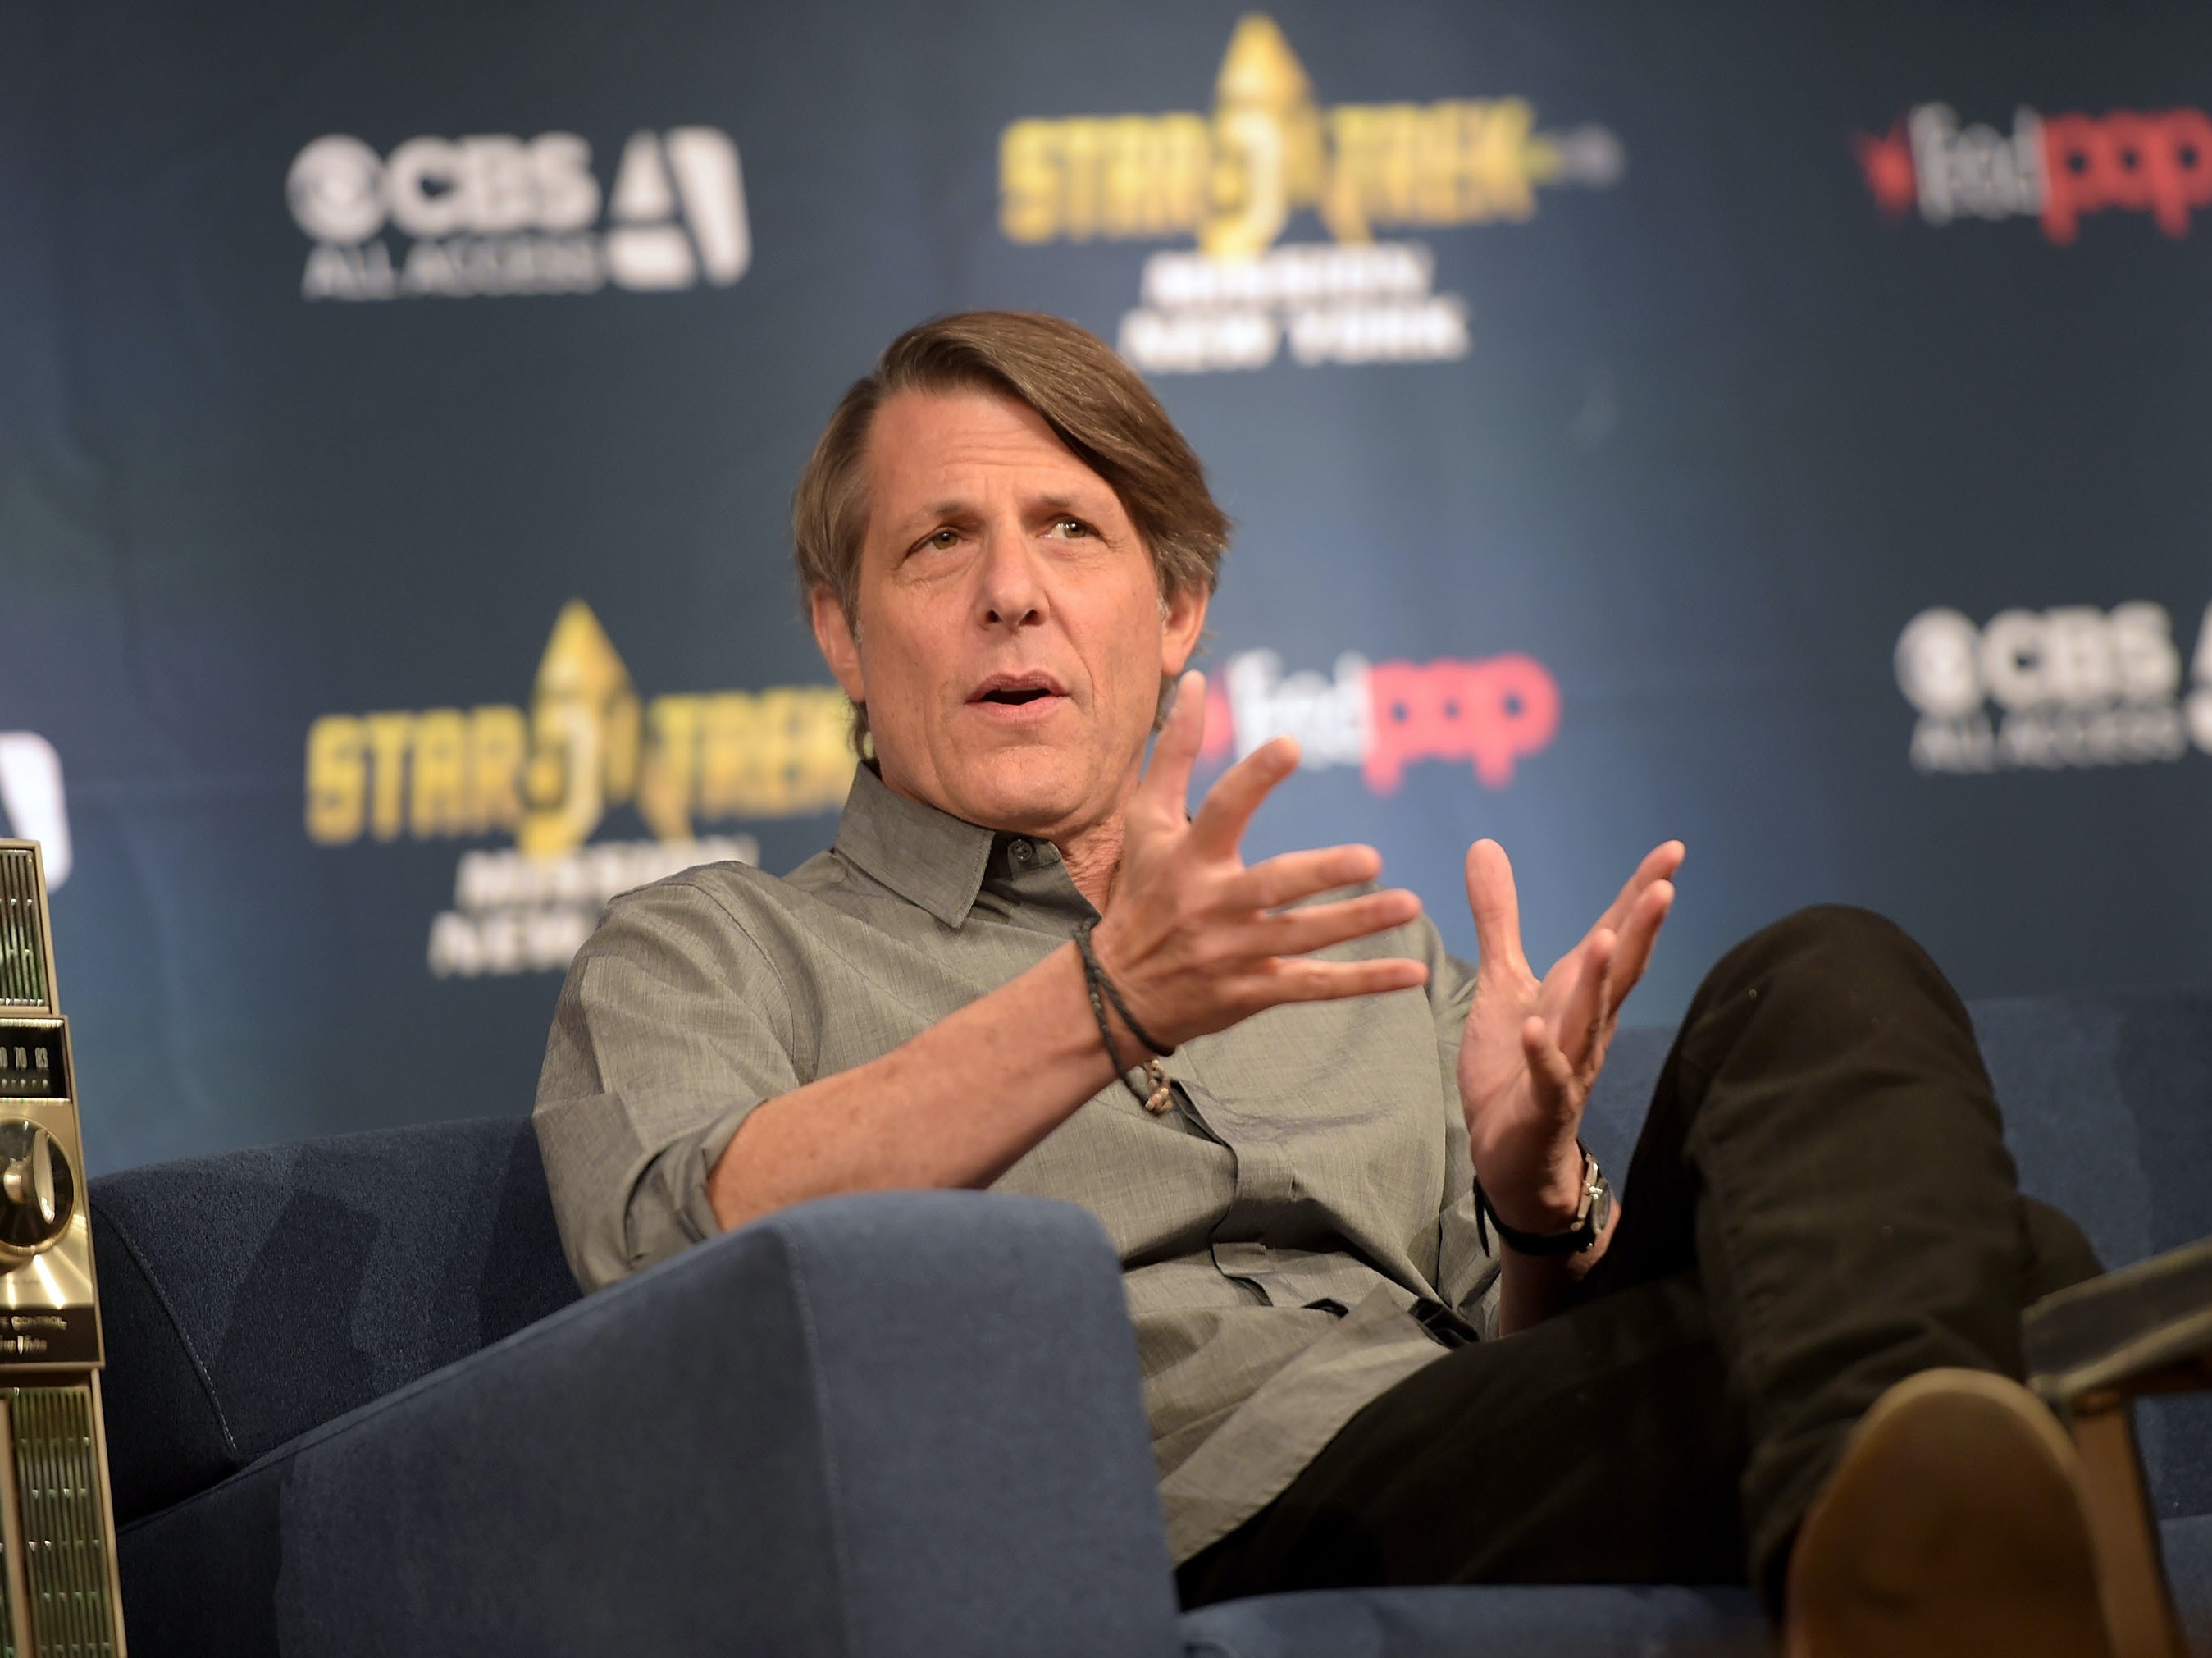 Leonard Nimoy's Son Explains How He'd Direct 'Star Wars'